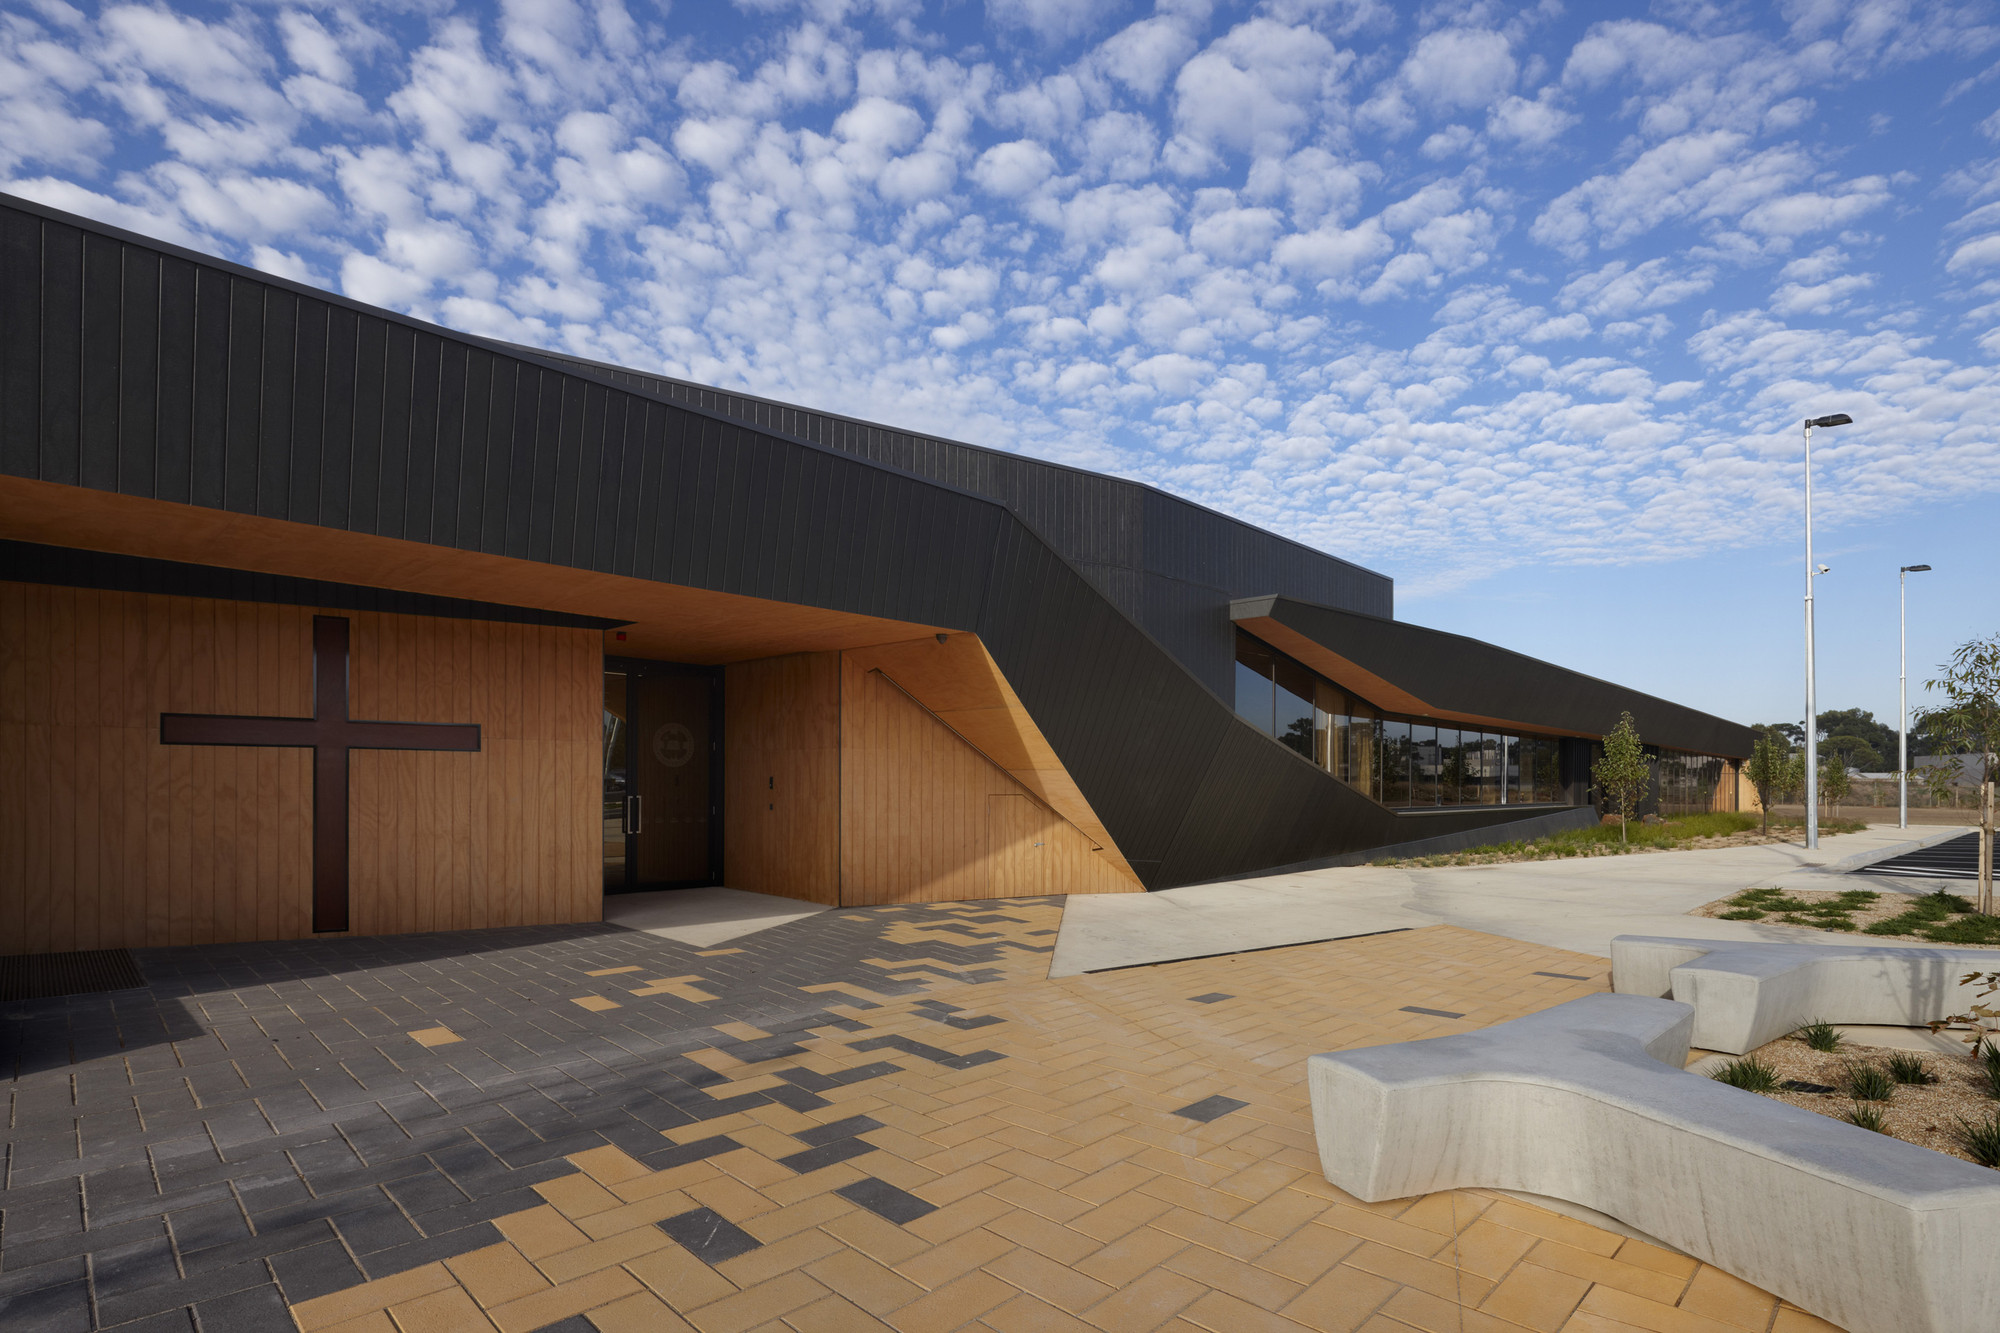 The University of Notre Dame Australia Werribee Clinical School / DesignInc, © Dianna Snape